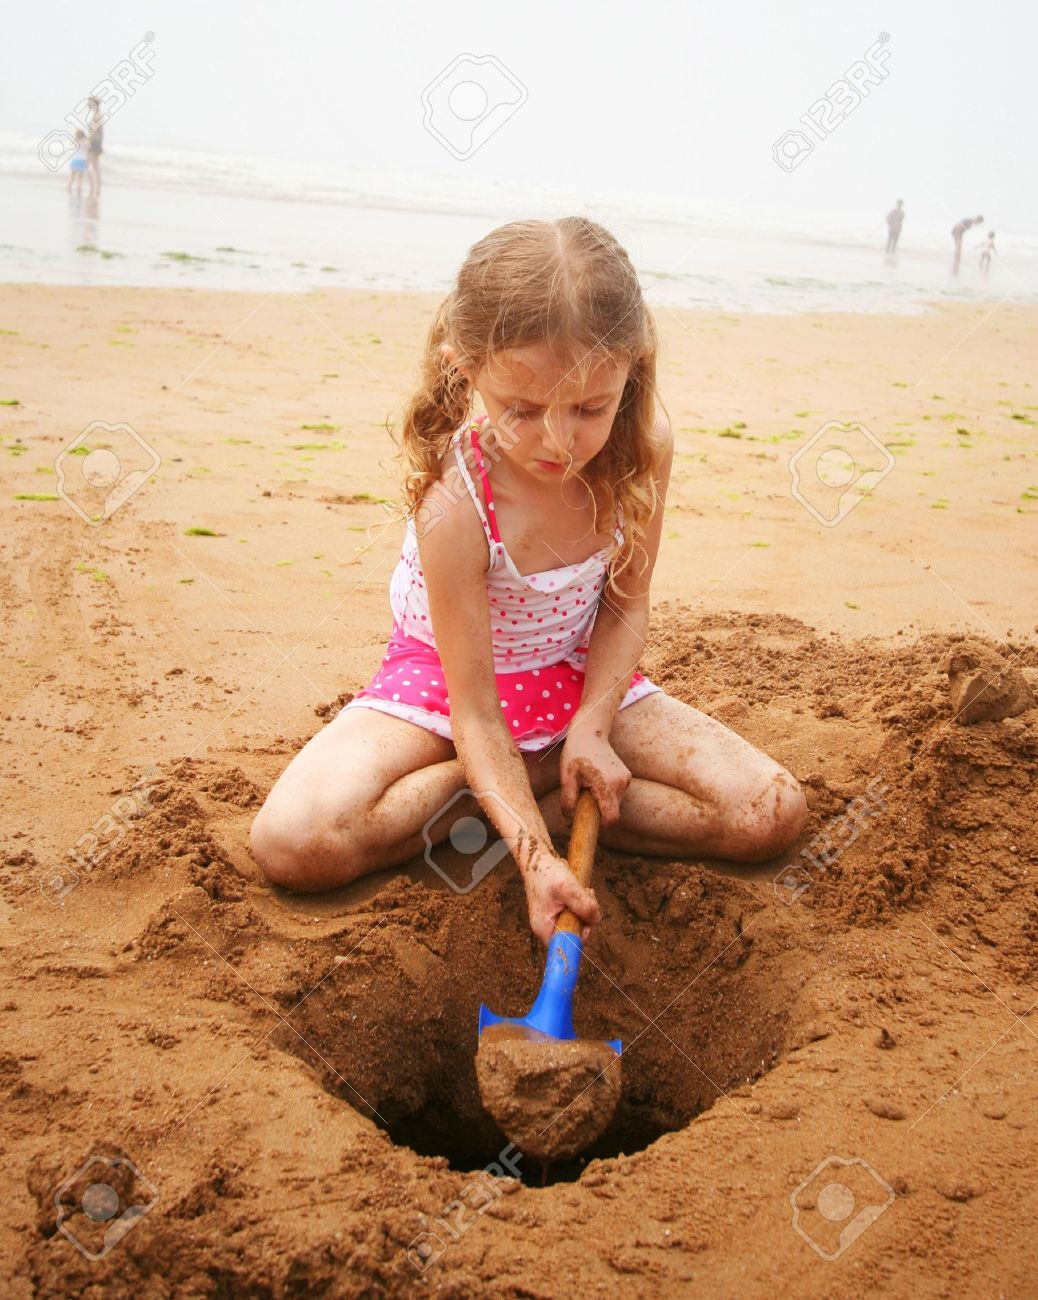 A Little Girl in a Pink Polkadot Swimsuit Digging at the Beach with a Blue Shovel Stock Photo - 7700599